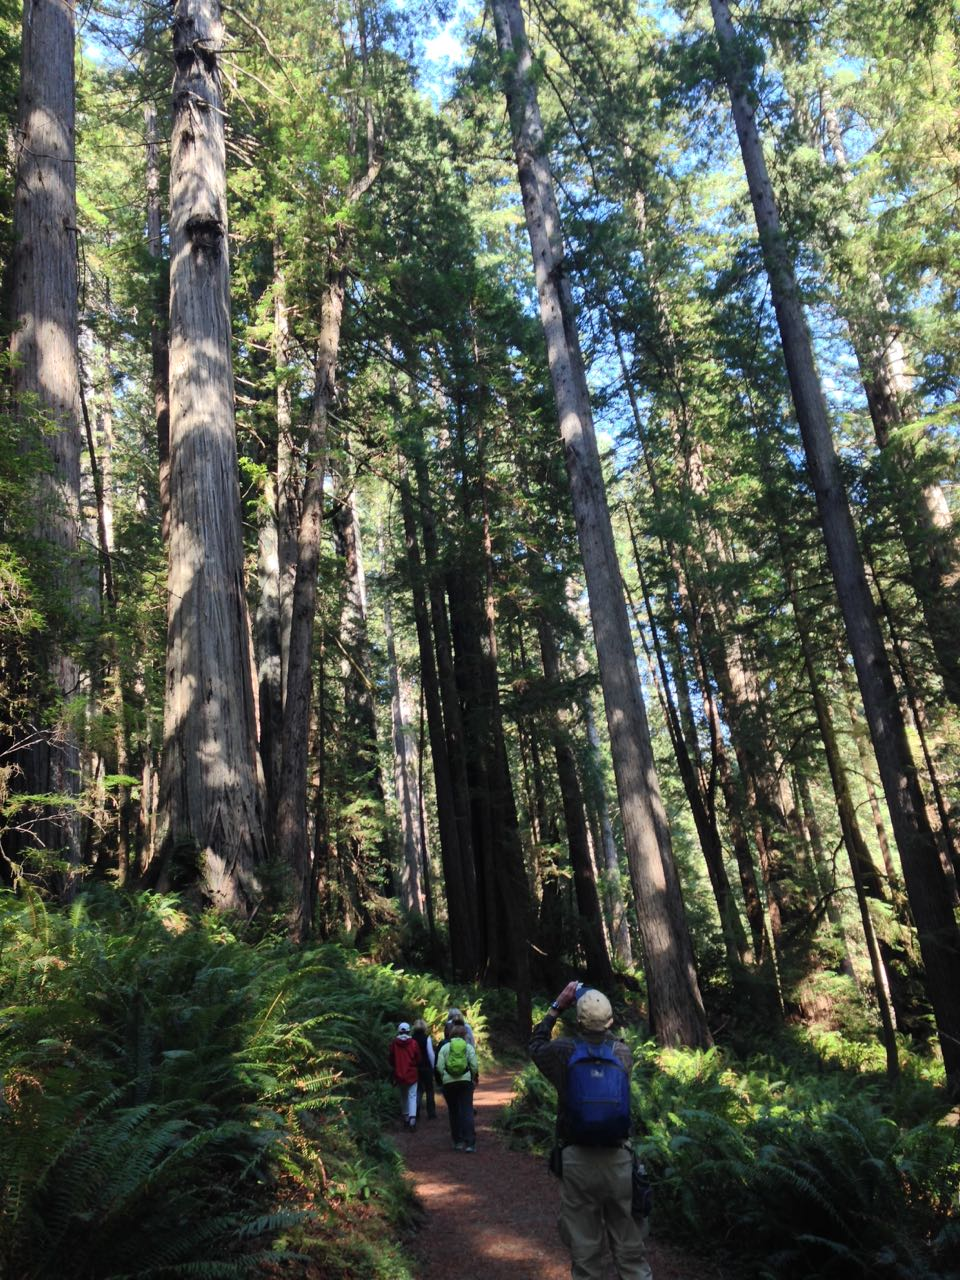 Redwoods 2017 10 08 267 Of 287